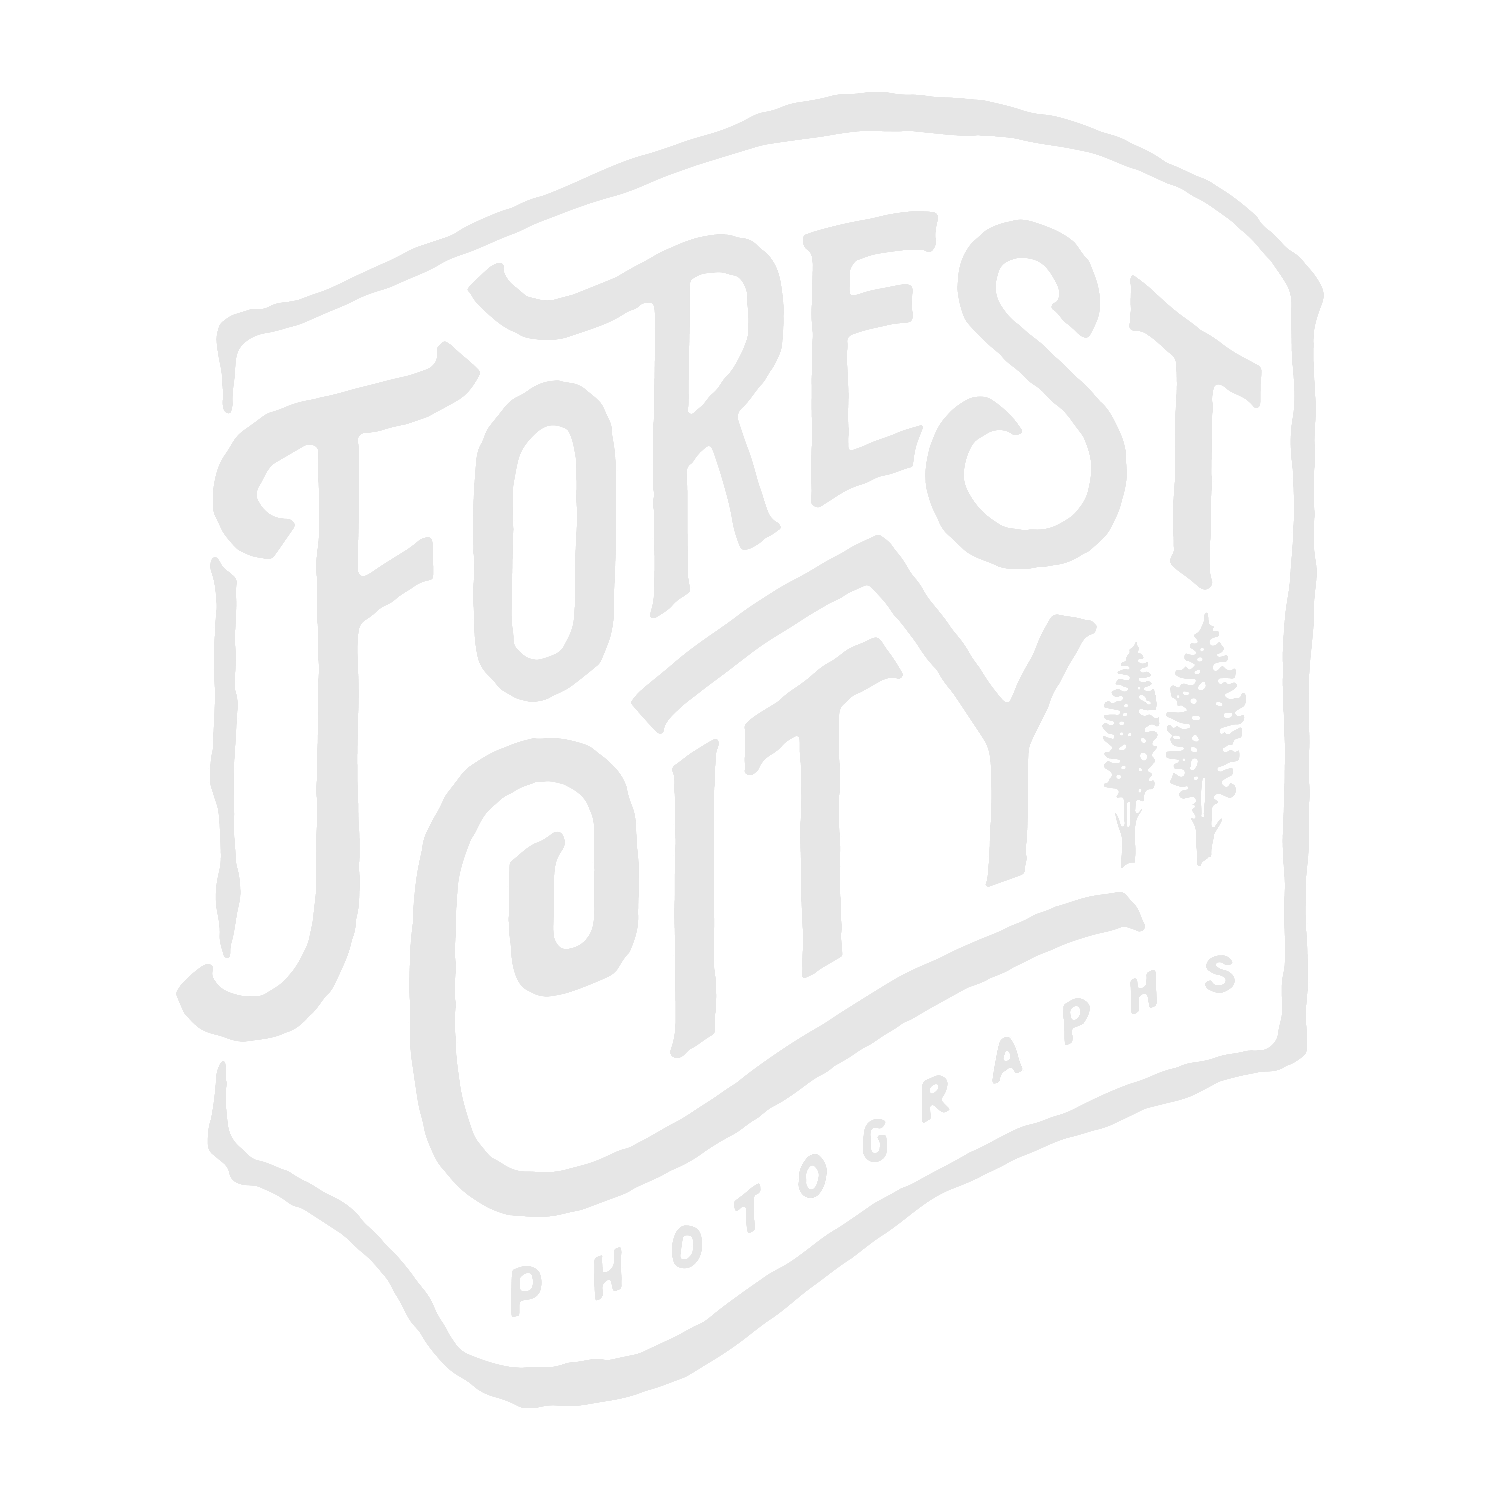 Forest City Photographs